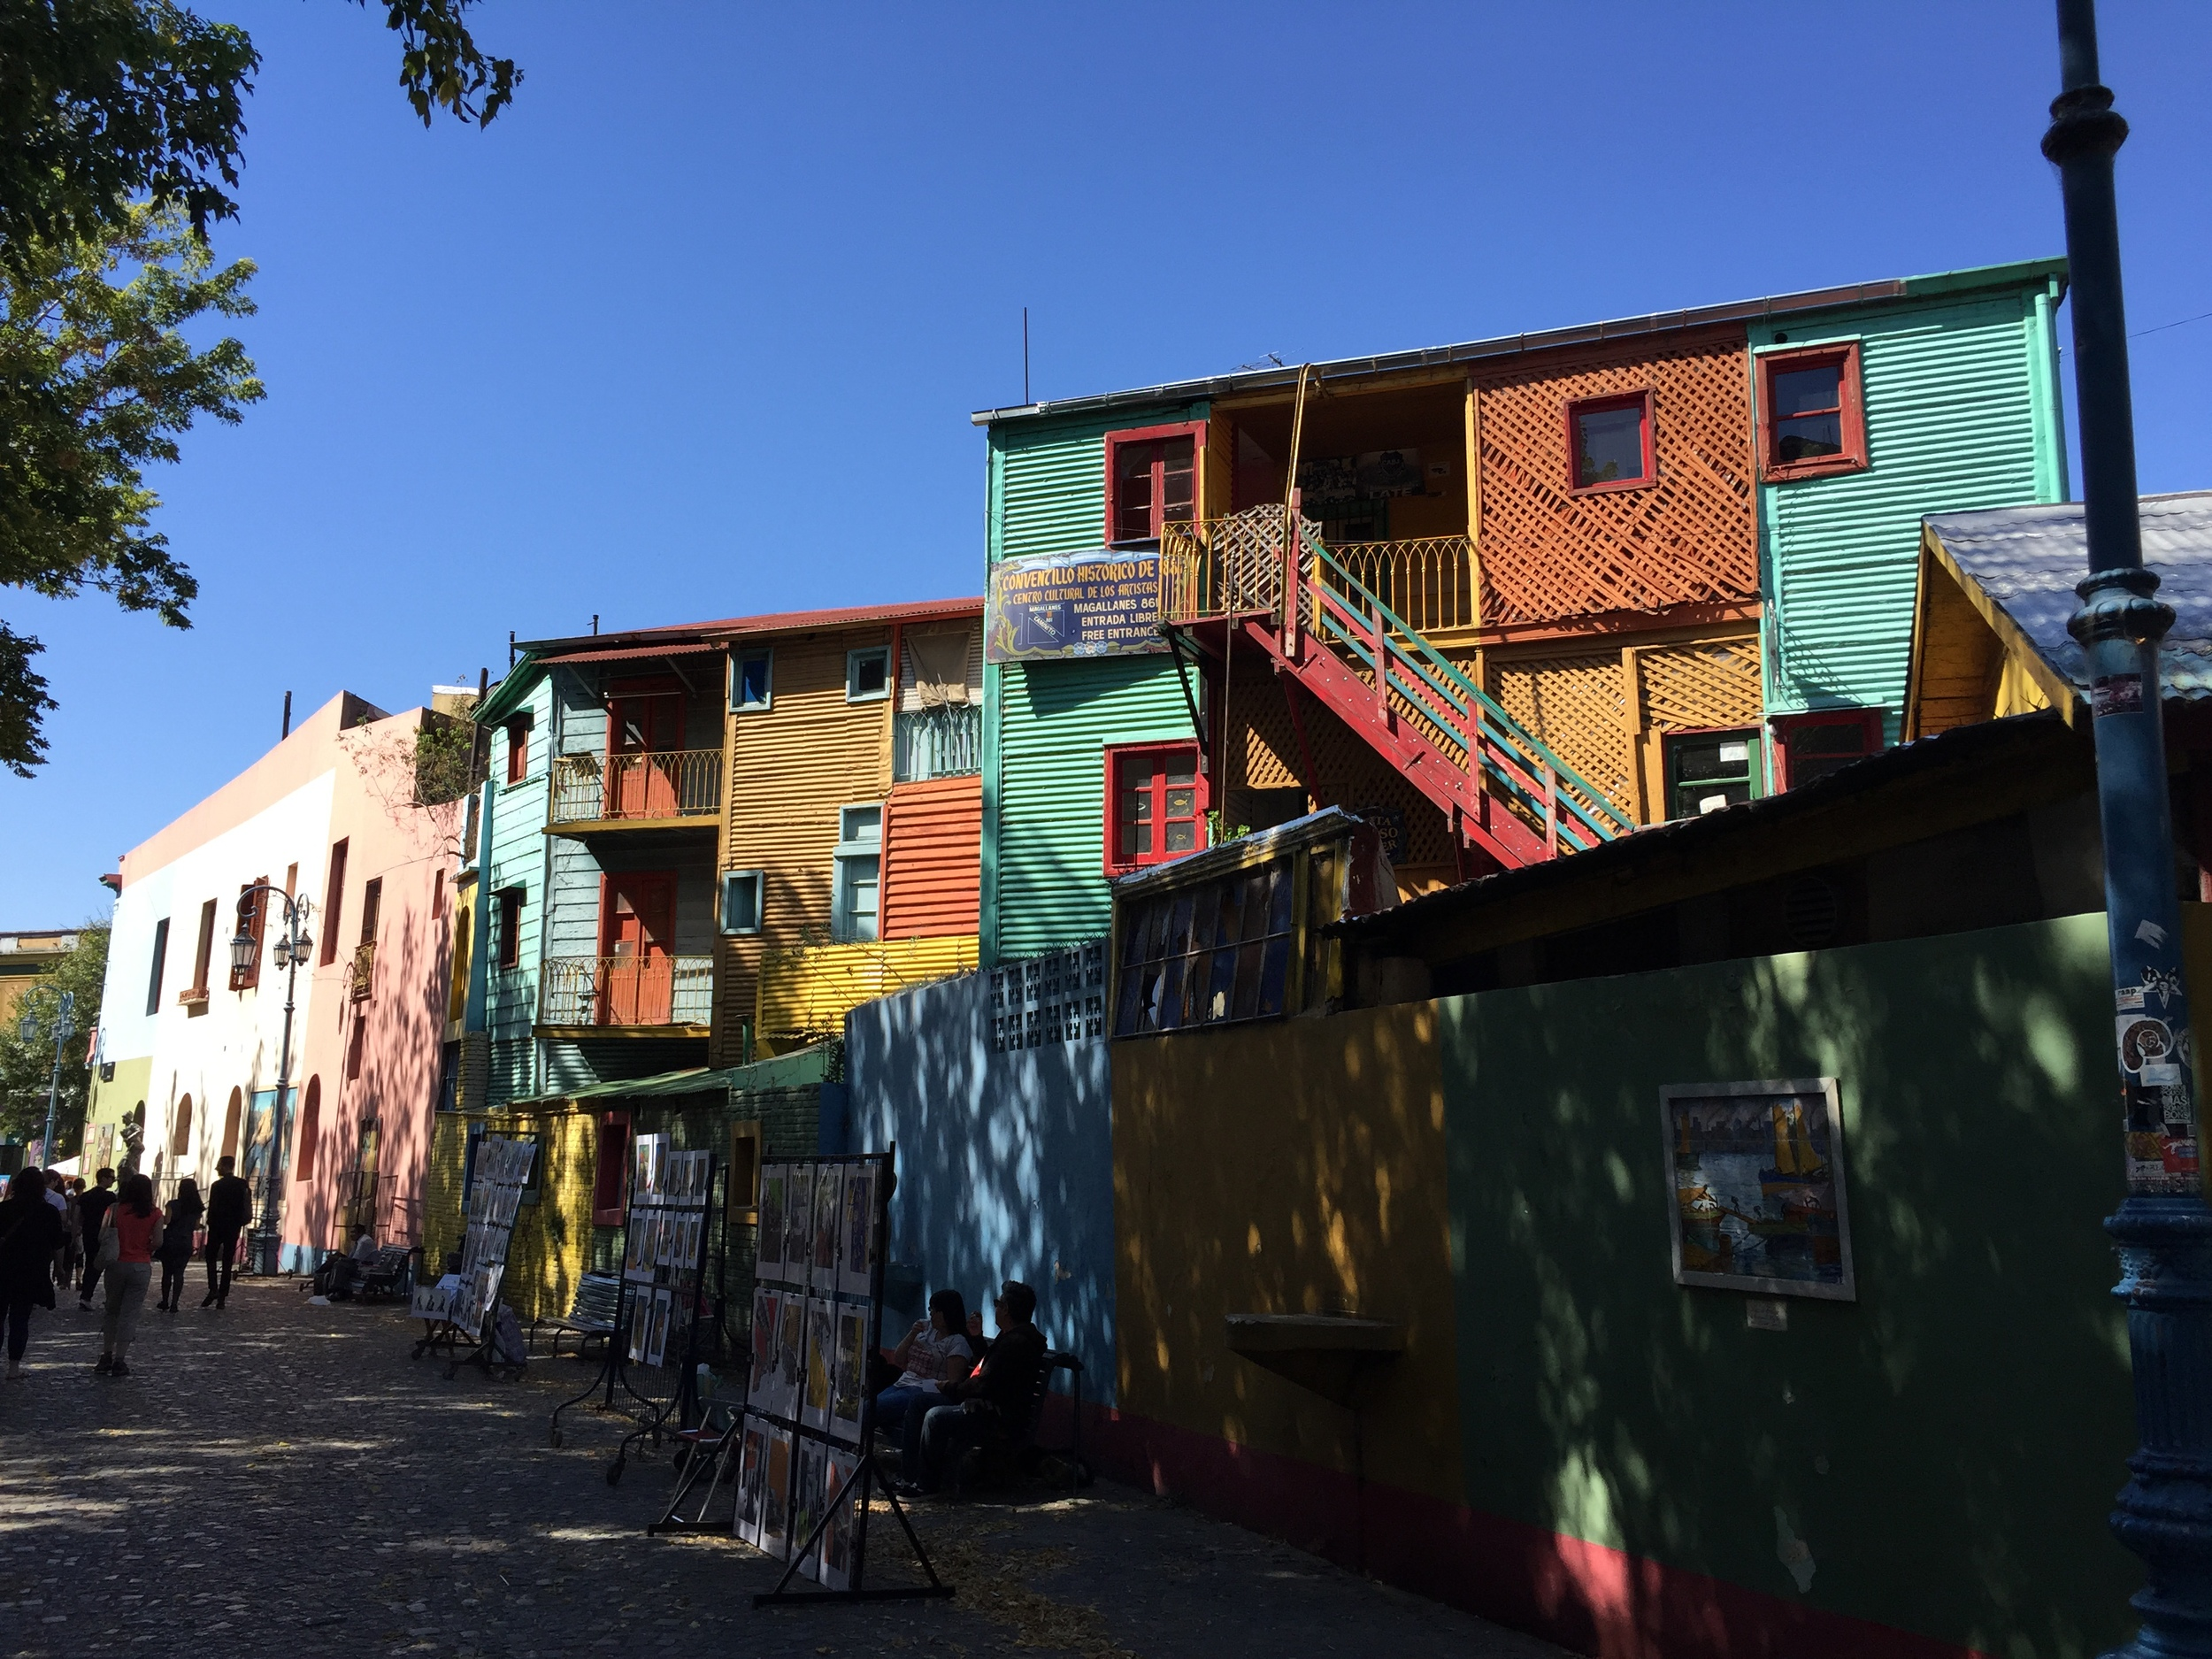 Actually, this is not Florida Street but the birthplace of the Tango called El Plato. I was too scared to look suspicious on Florida Street.